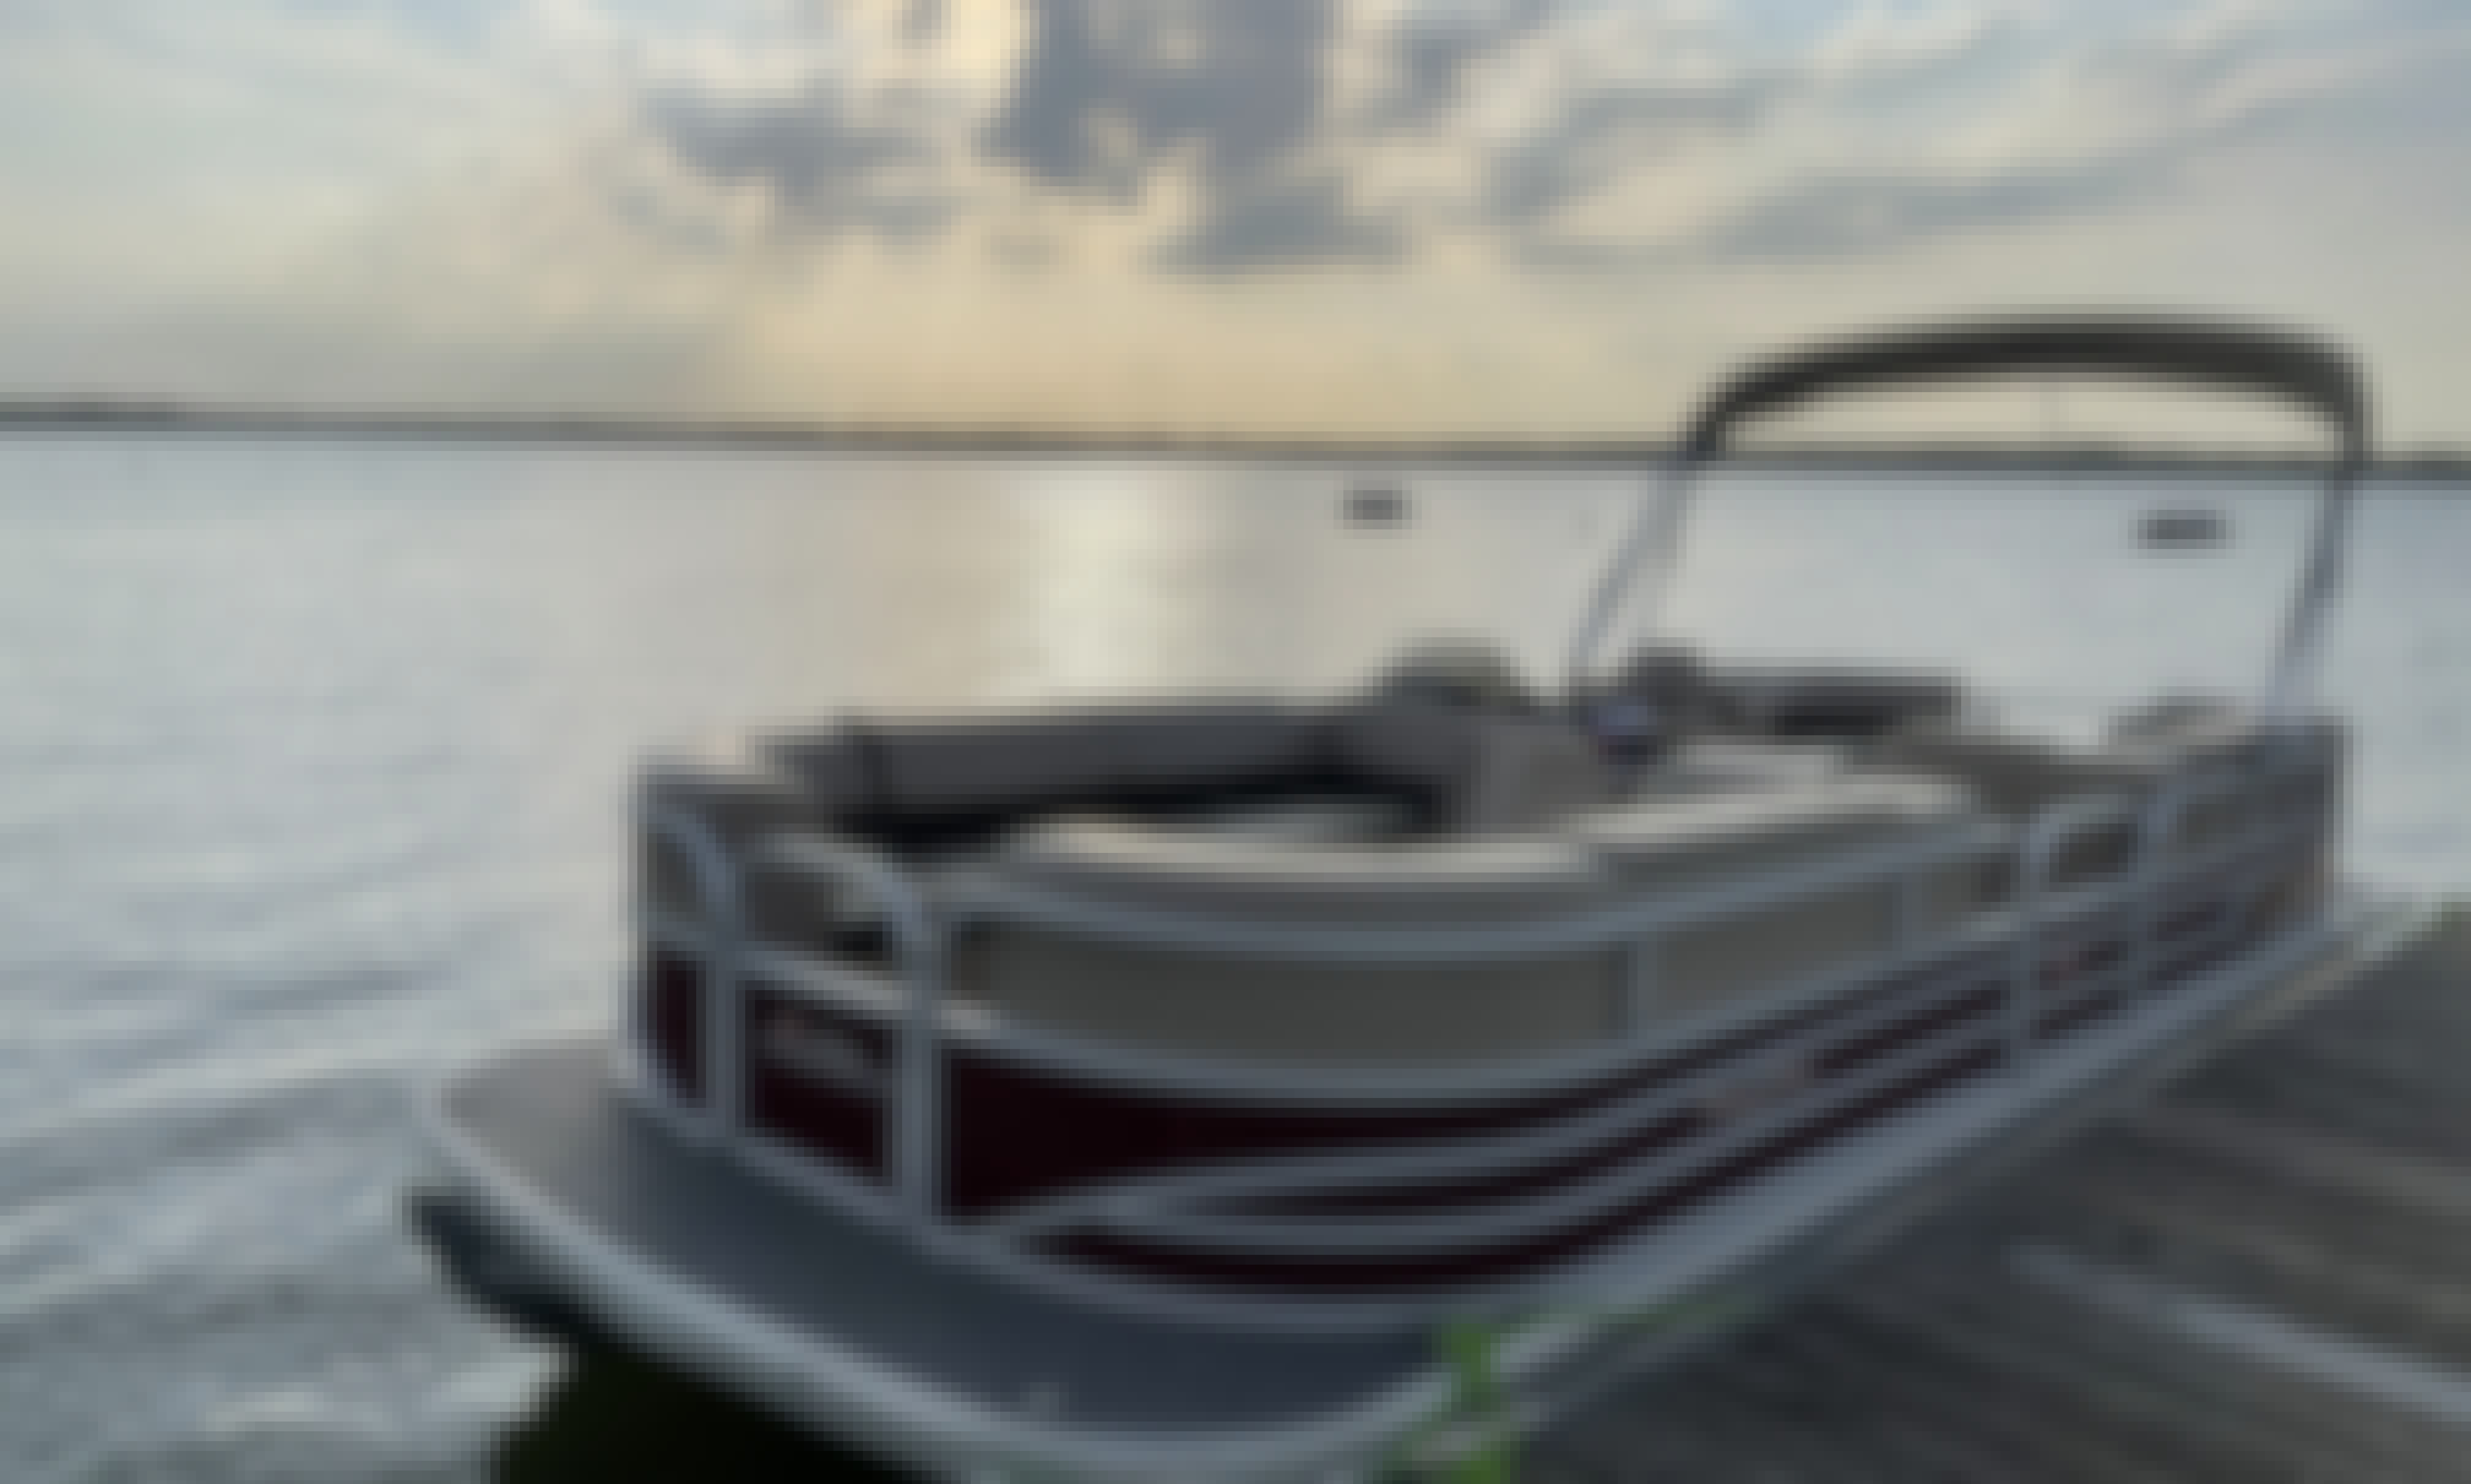 Sun Tracker 24' Pontoon Boat for Rent on Richland-Chambers Reservoir